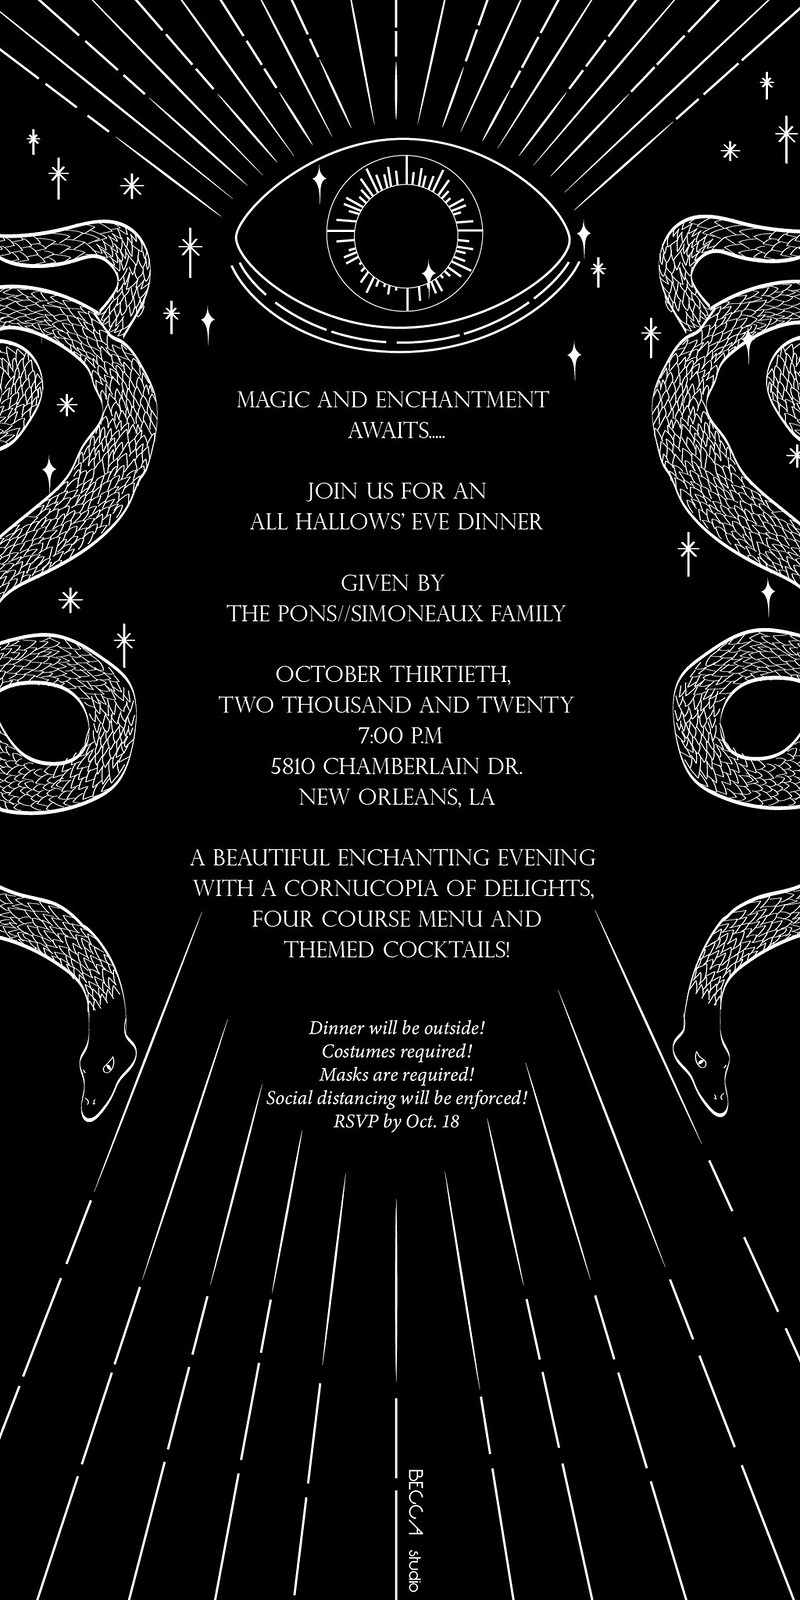 All Hallows' Eve Dinner Event Design, Print Invitation, Halloween Party Invitation, Halloween Dinner Invitation, Design, Invitation Design, Illustration, Print Design, Card Design, Art Deco Design, Art Noveau Design, Evil Eye Design, Evil Eye Illustration, Modern Design, Postcard Design, Illustrator, Designer,  BECCA, Becca Studio, becca studio, BECCA studio, Multimedia Design, Graphic Design, Branding, Web Development, Murals, Illustration, Art Direction, BECCA, Becca Studio, becca studio, New Orleans Design, Branding, Web Development, Illustration, Murals, Art Direction